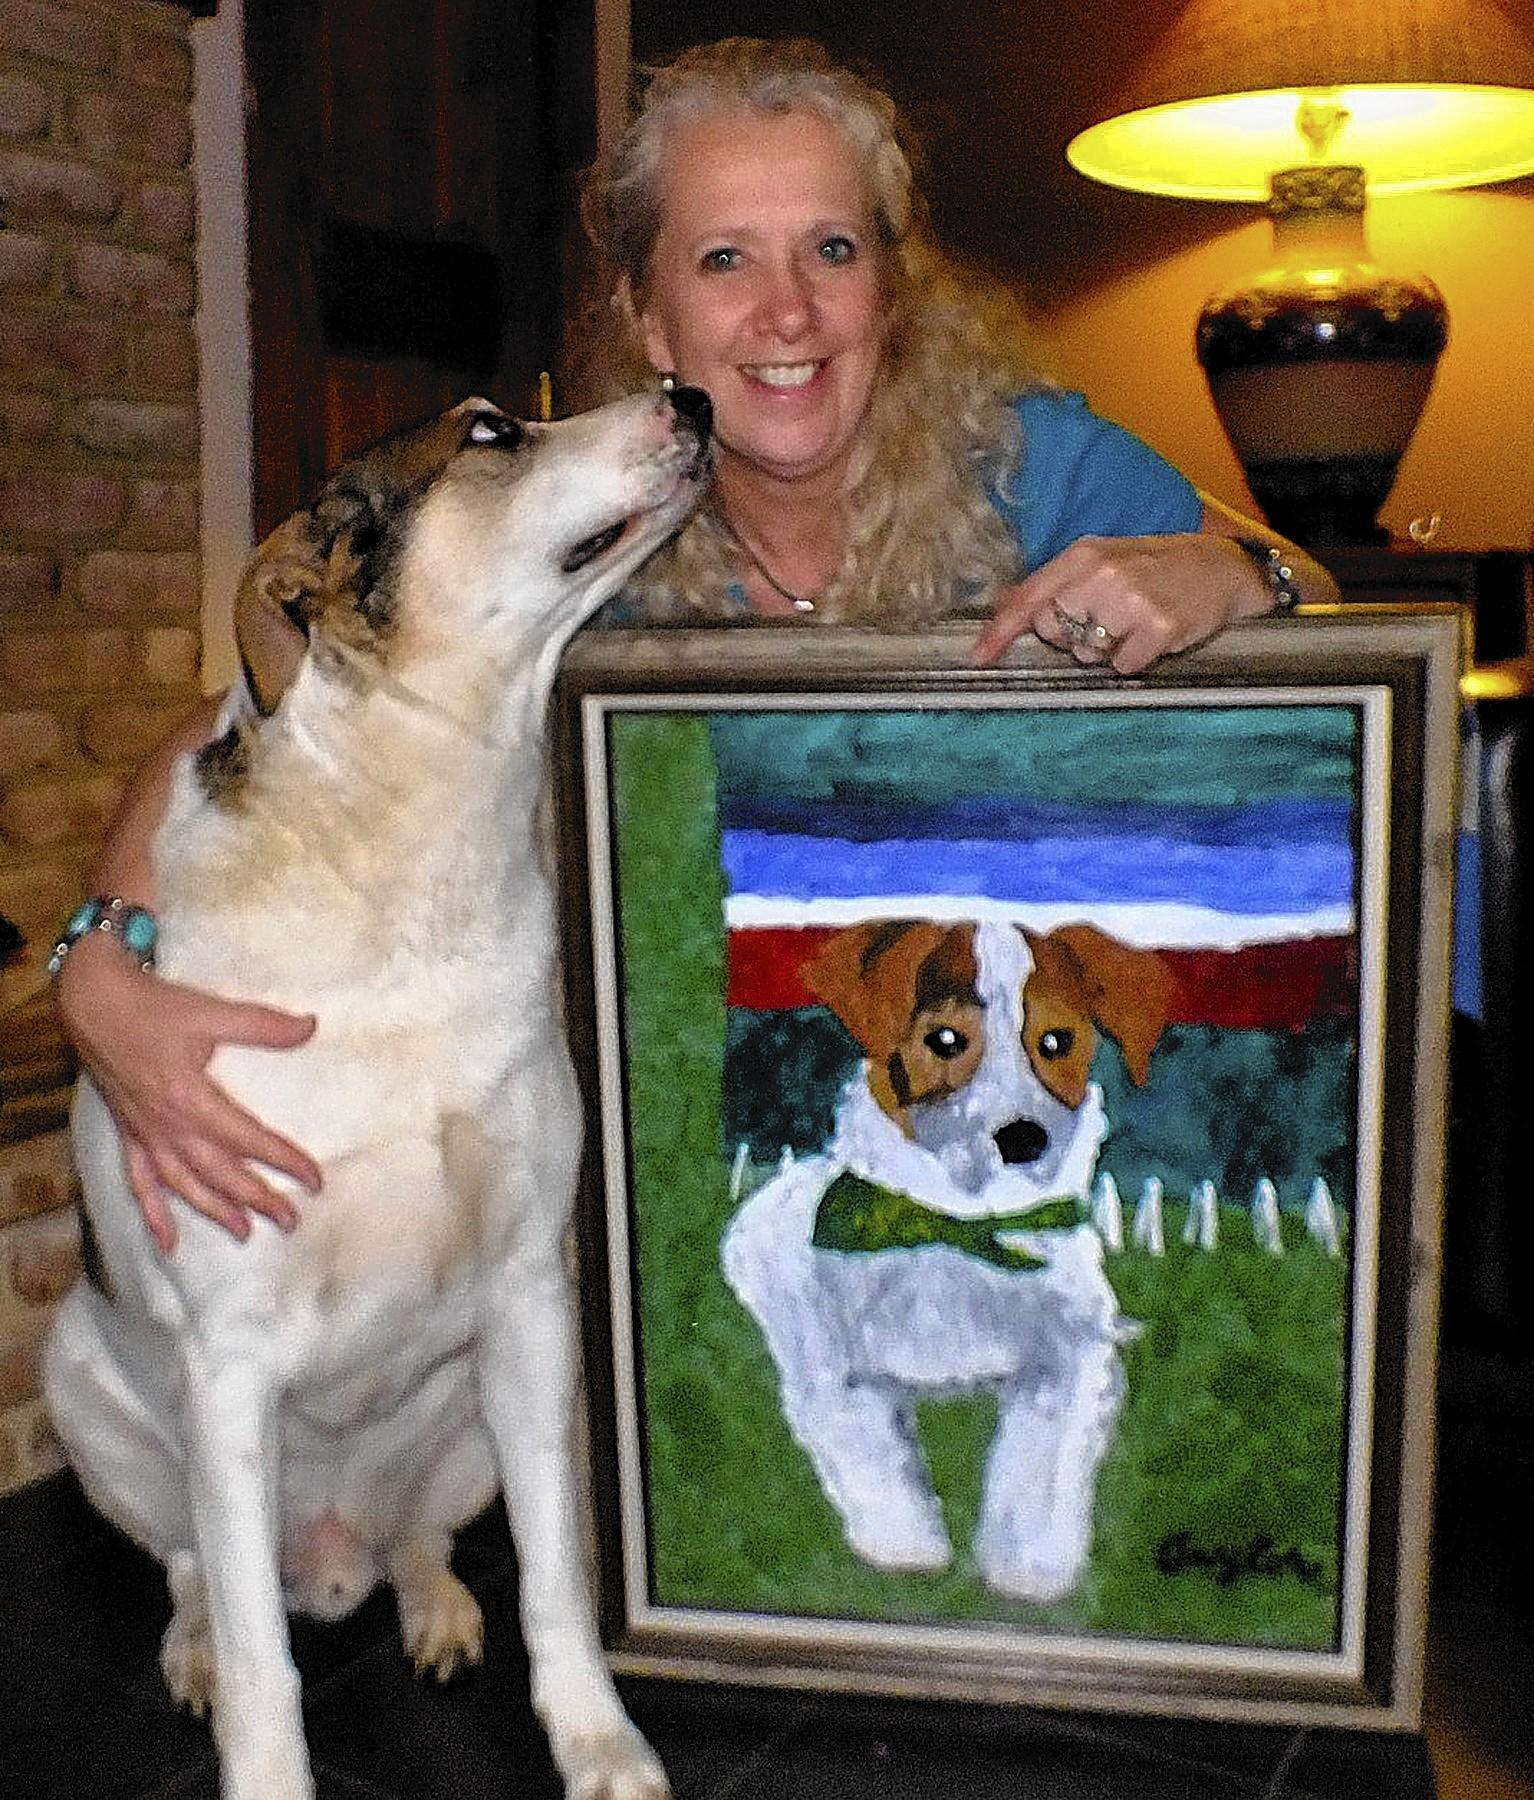 Corona, a 6 year old Jack Russell mix, owned and loved by Angela Faidley, 54, of Macungie.